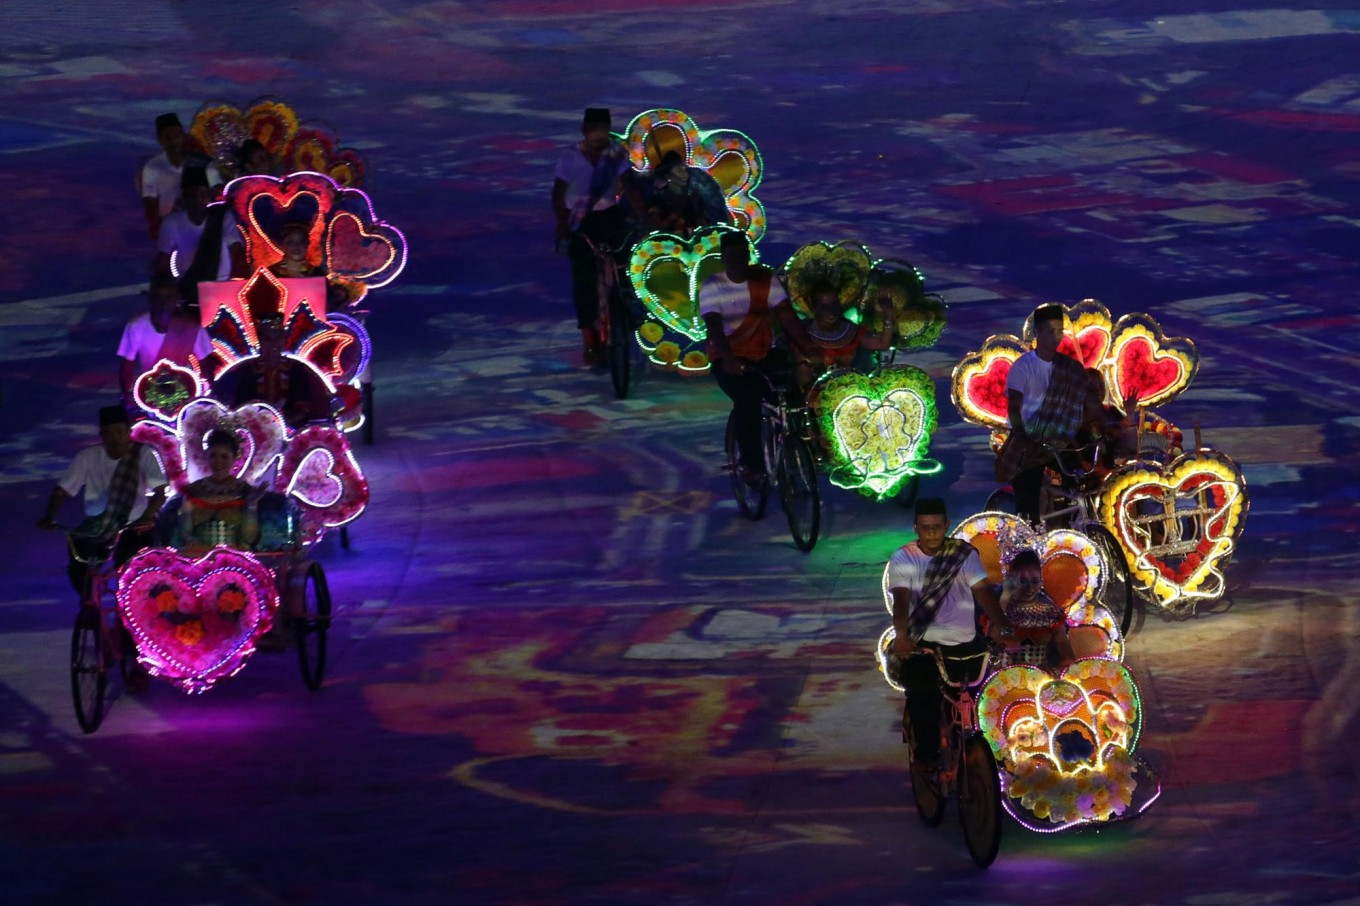 Dancers ride tricycles during their performance at the opening ceremony. JP/Seto Wardhana